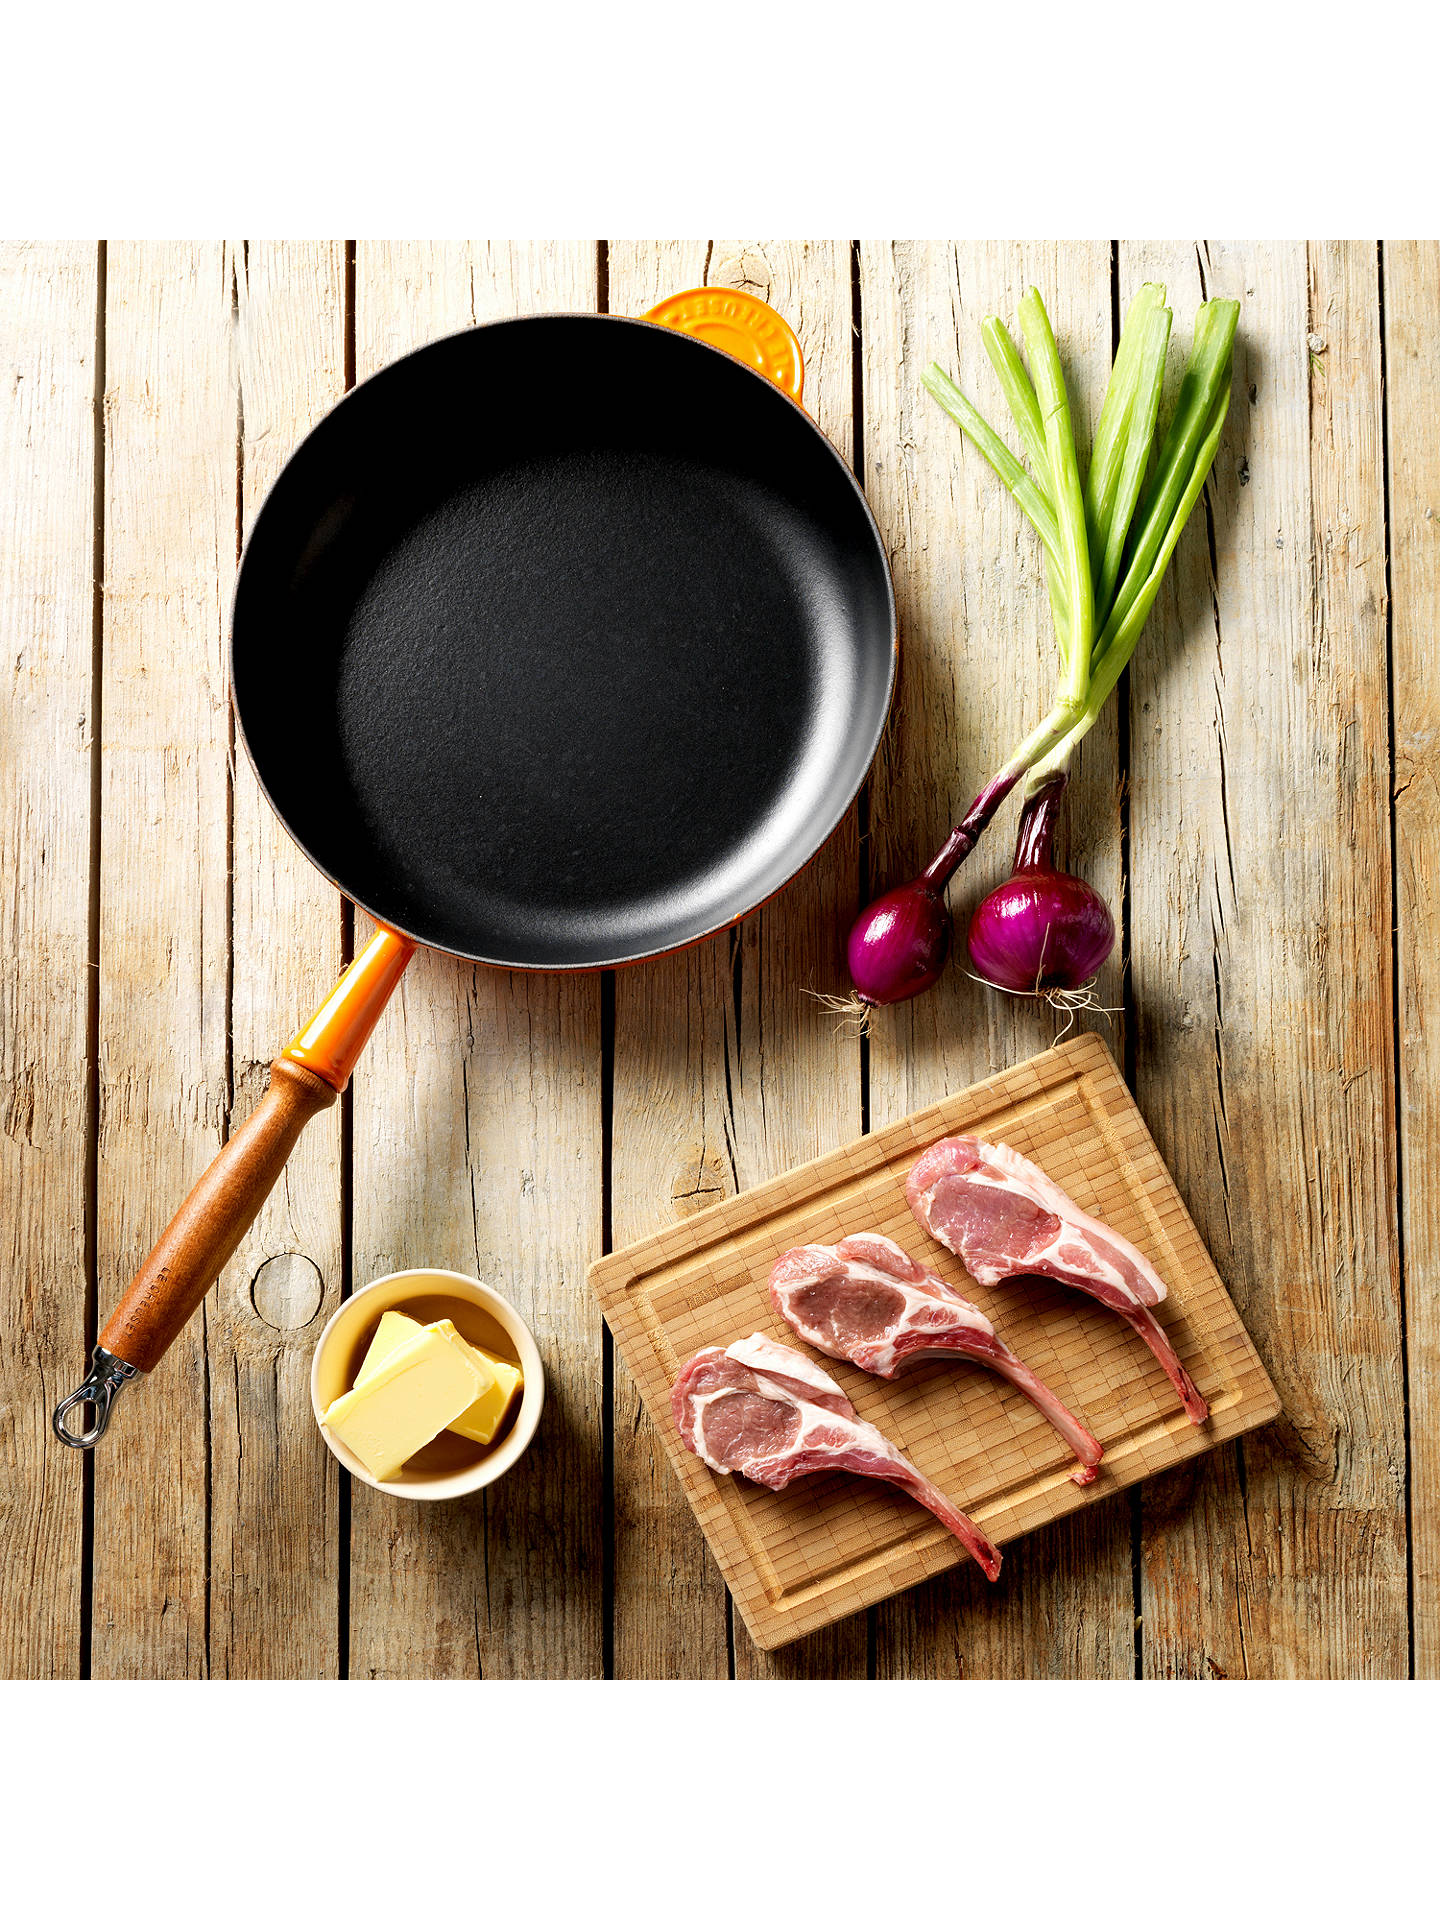 Buy Le Creuset 26cm Cast Iron Frying Pan with Wood Handle, Volcanic Online at johnlewis.com